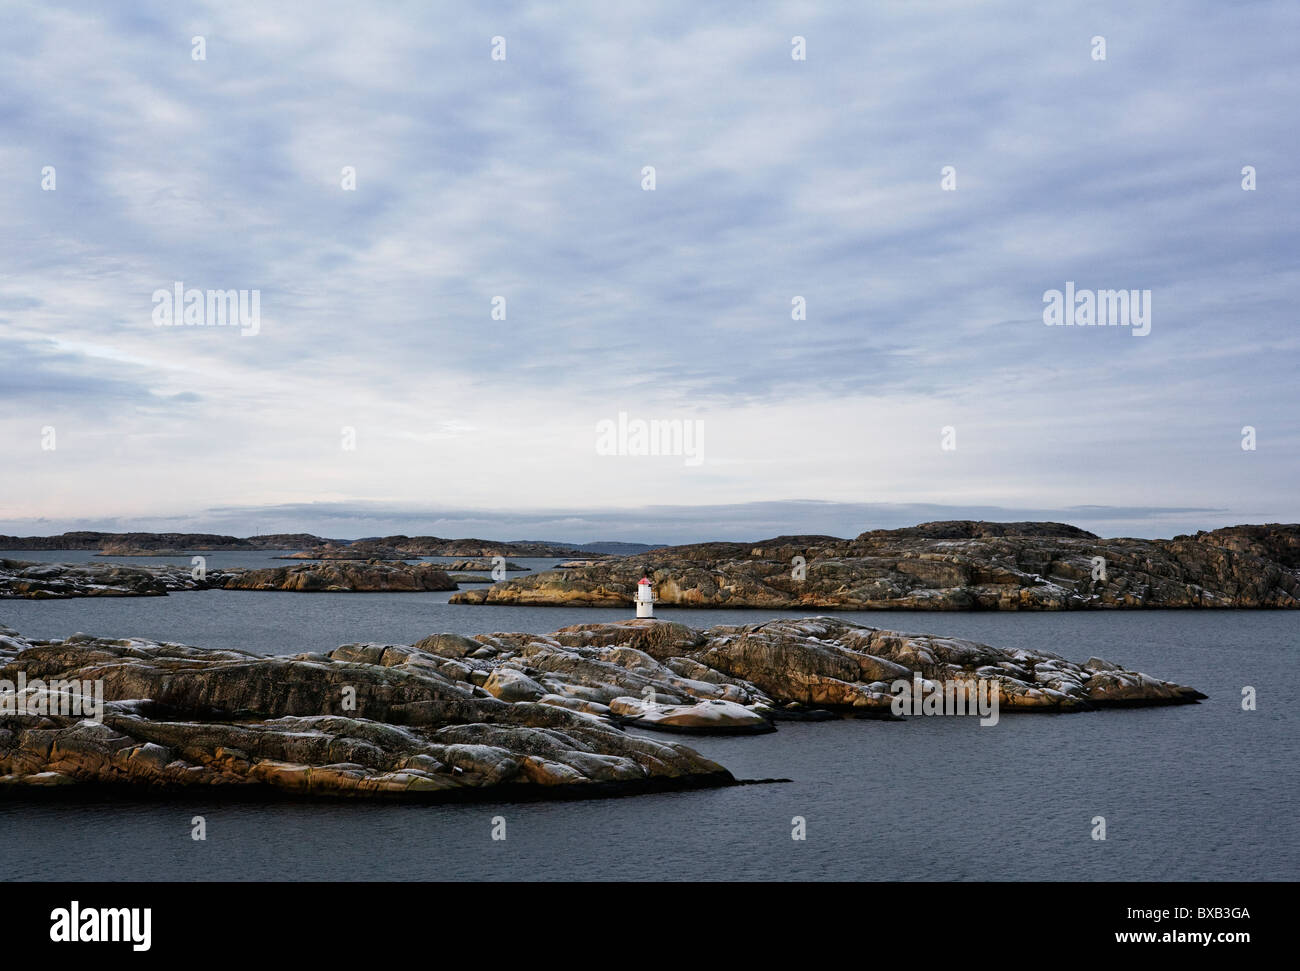 Remote lighthouse on rocks - Stock Image